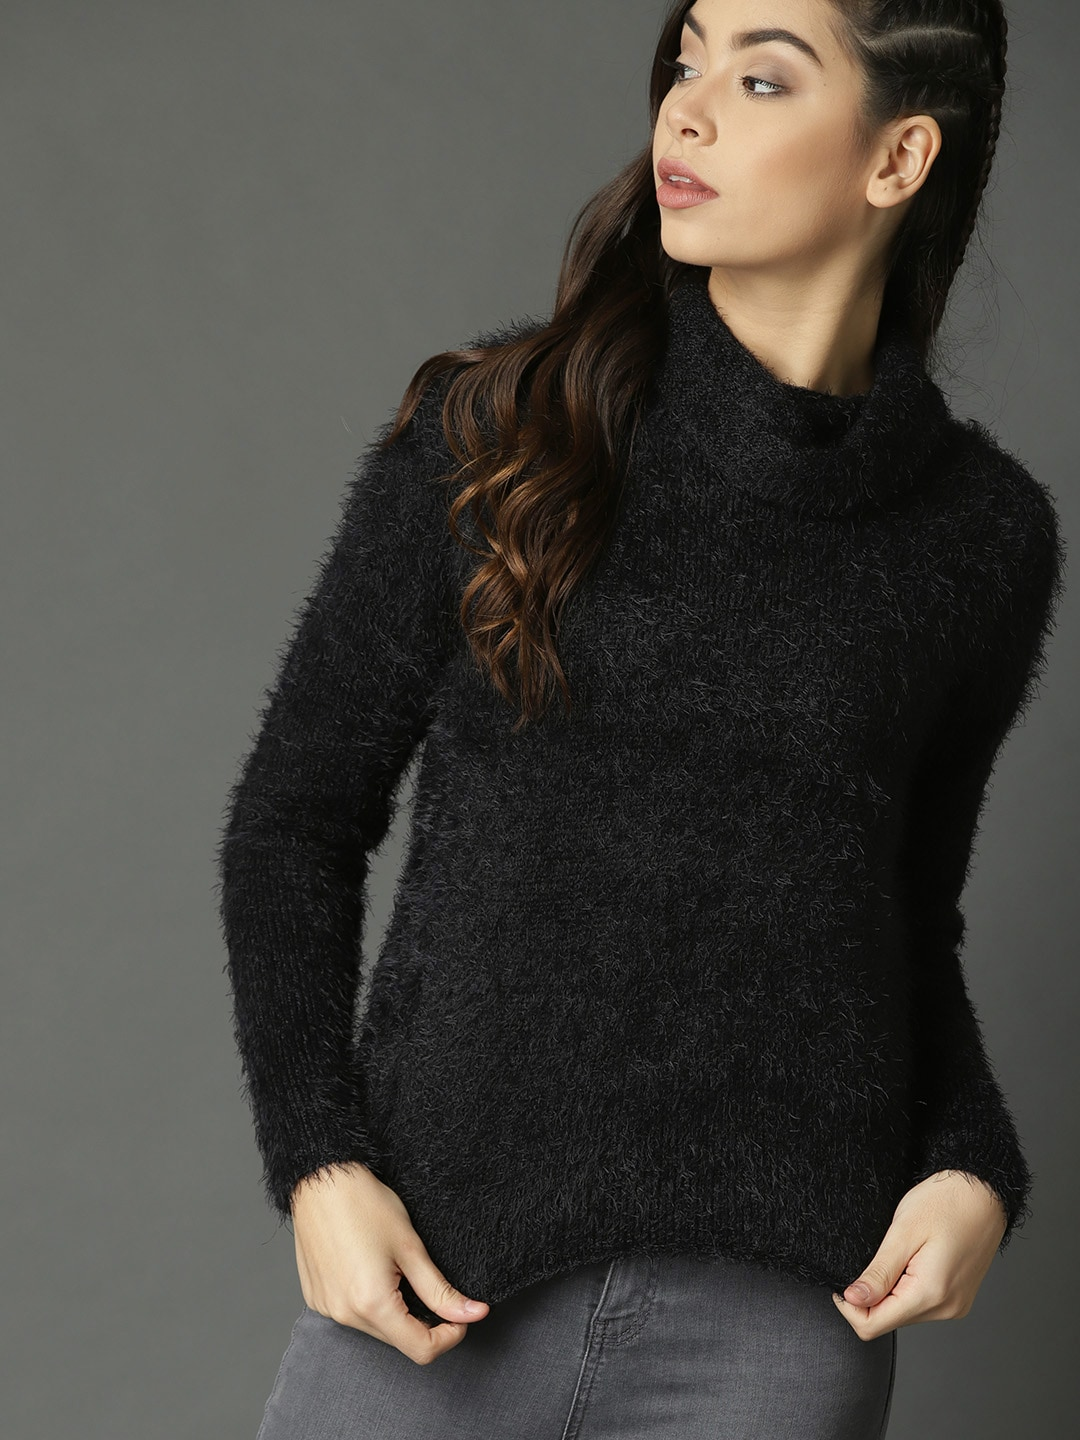 1242d0c76990 Turtle Neck Sweaters - Buy Turtle Neck Sweaters online in India